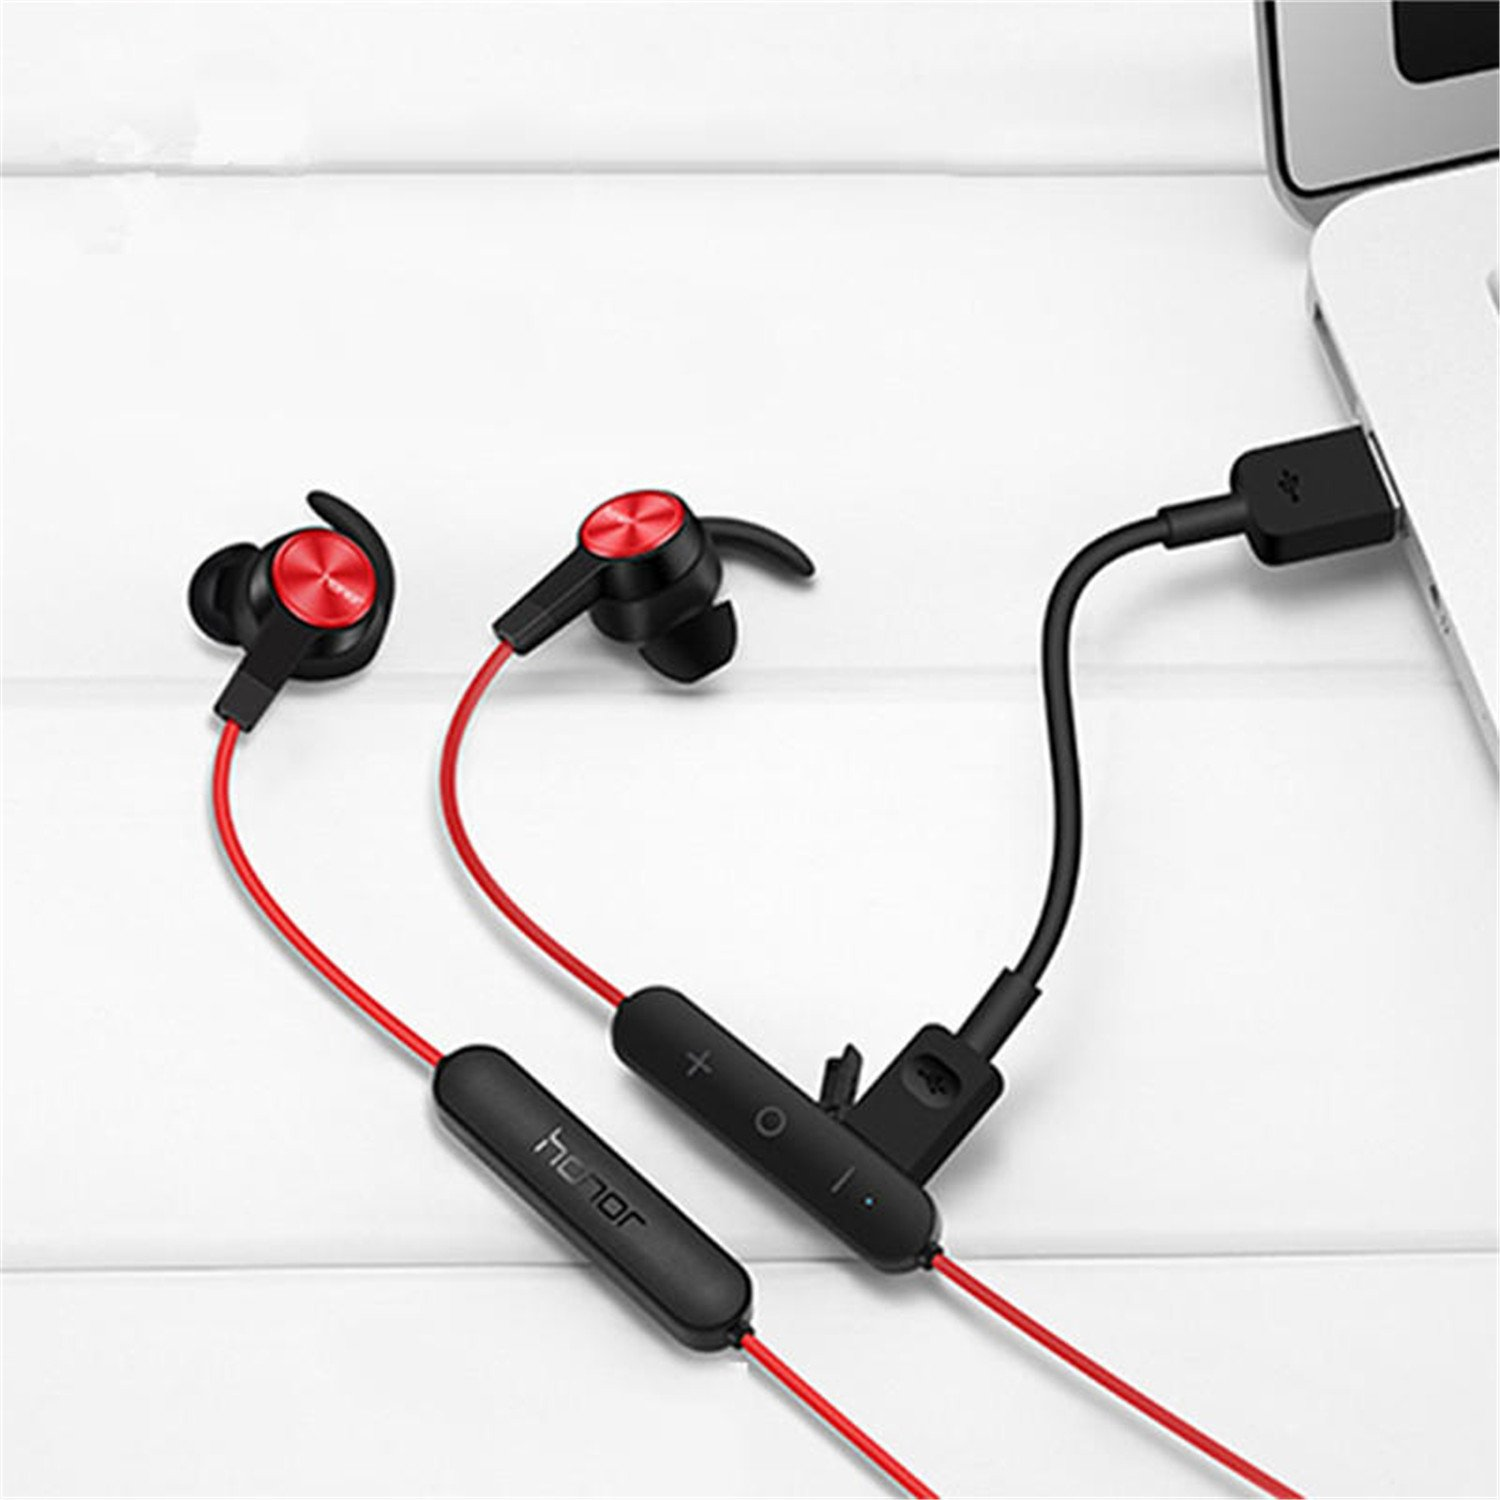 Amazon.com: Original Honor Xsport Bluetooth Earphones AM61 IPX5 Waterproof Music Mic Control Wireless Headset Earbuds For Android Ios black color: Home ...